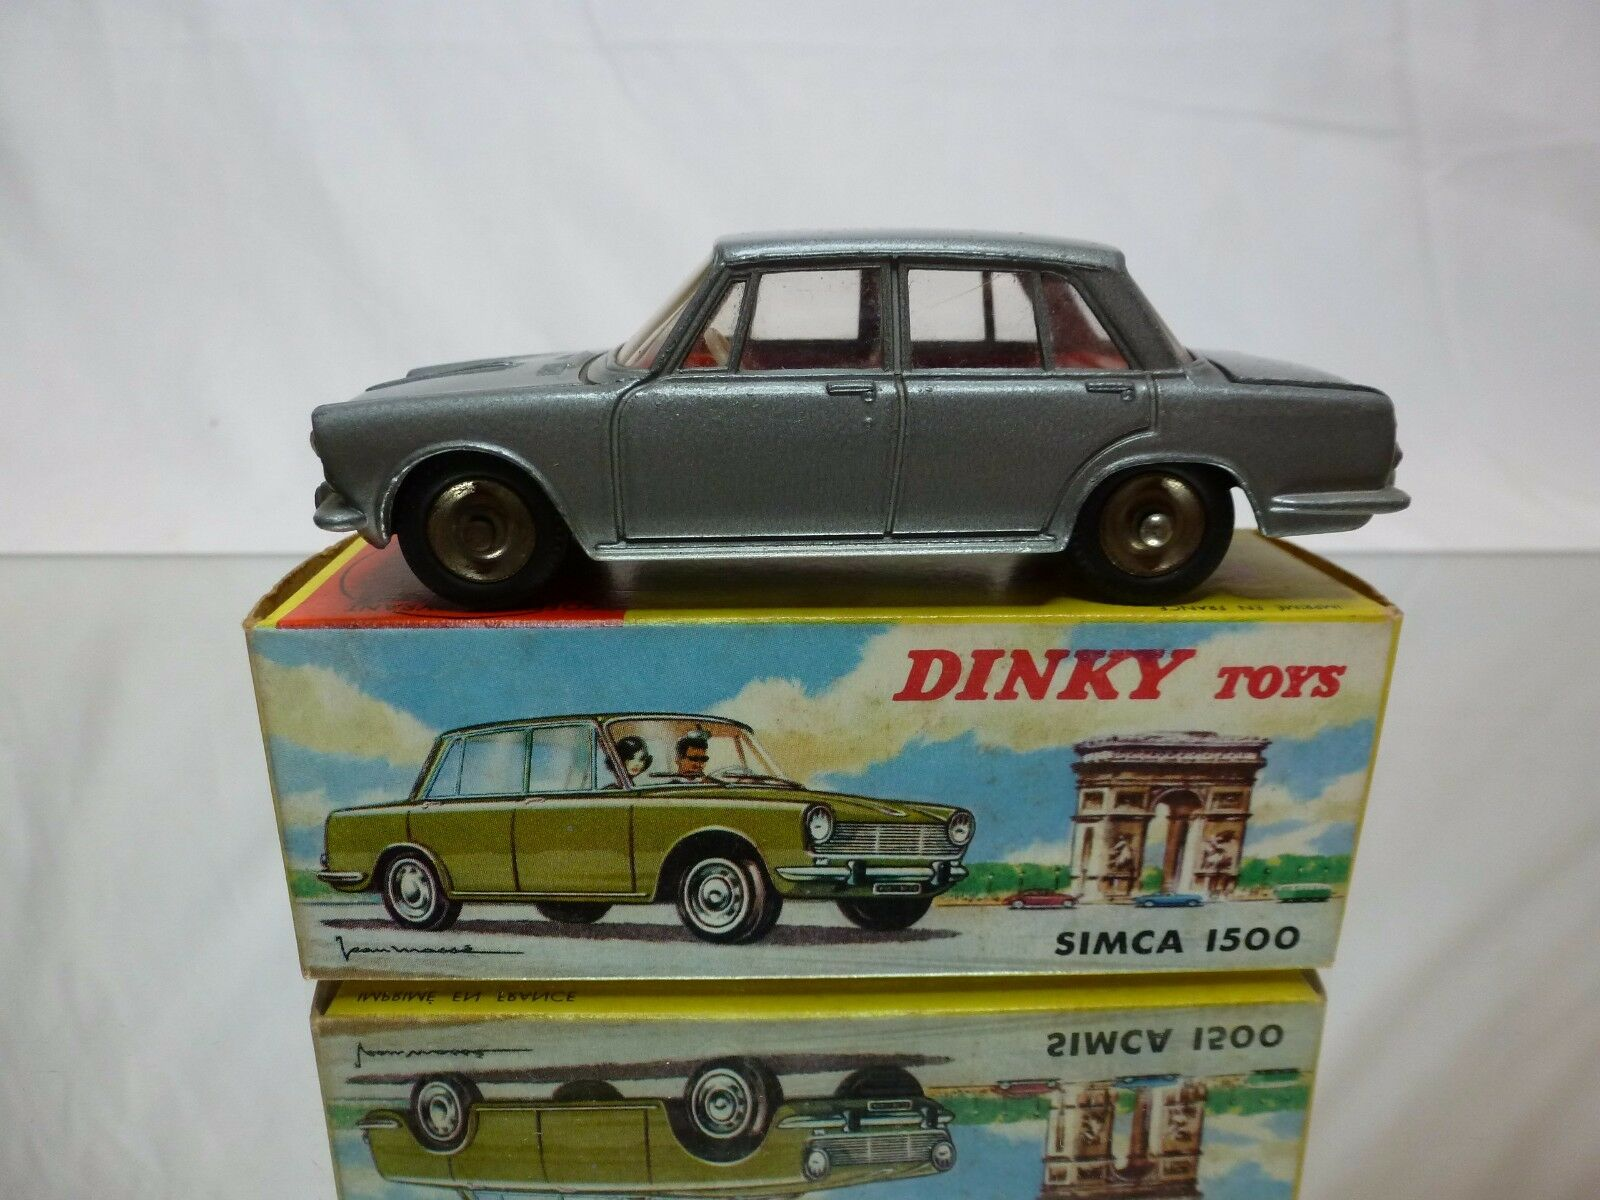 DINKY TOYS TOYS TOYS FRANCE 523 SIMCA 1500 - grigio 1:43 RARE - GOOD CONDITION IN BOX 680ad5